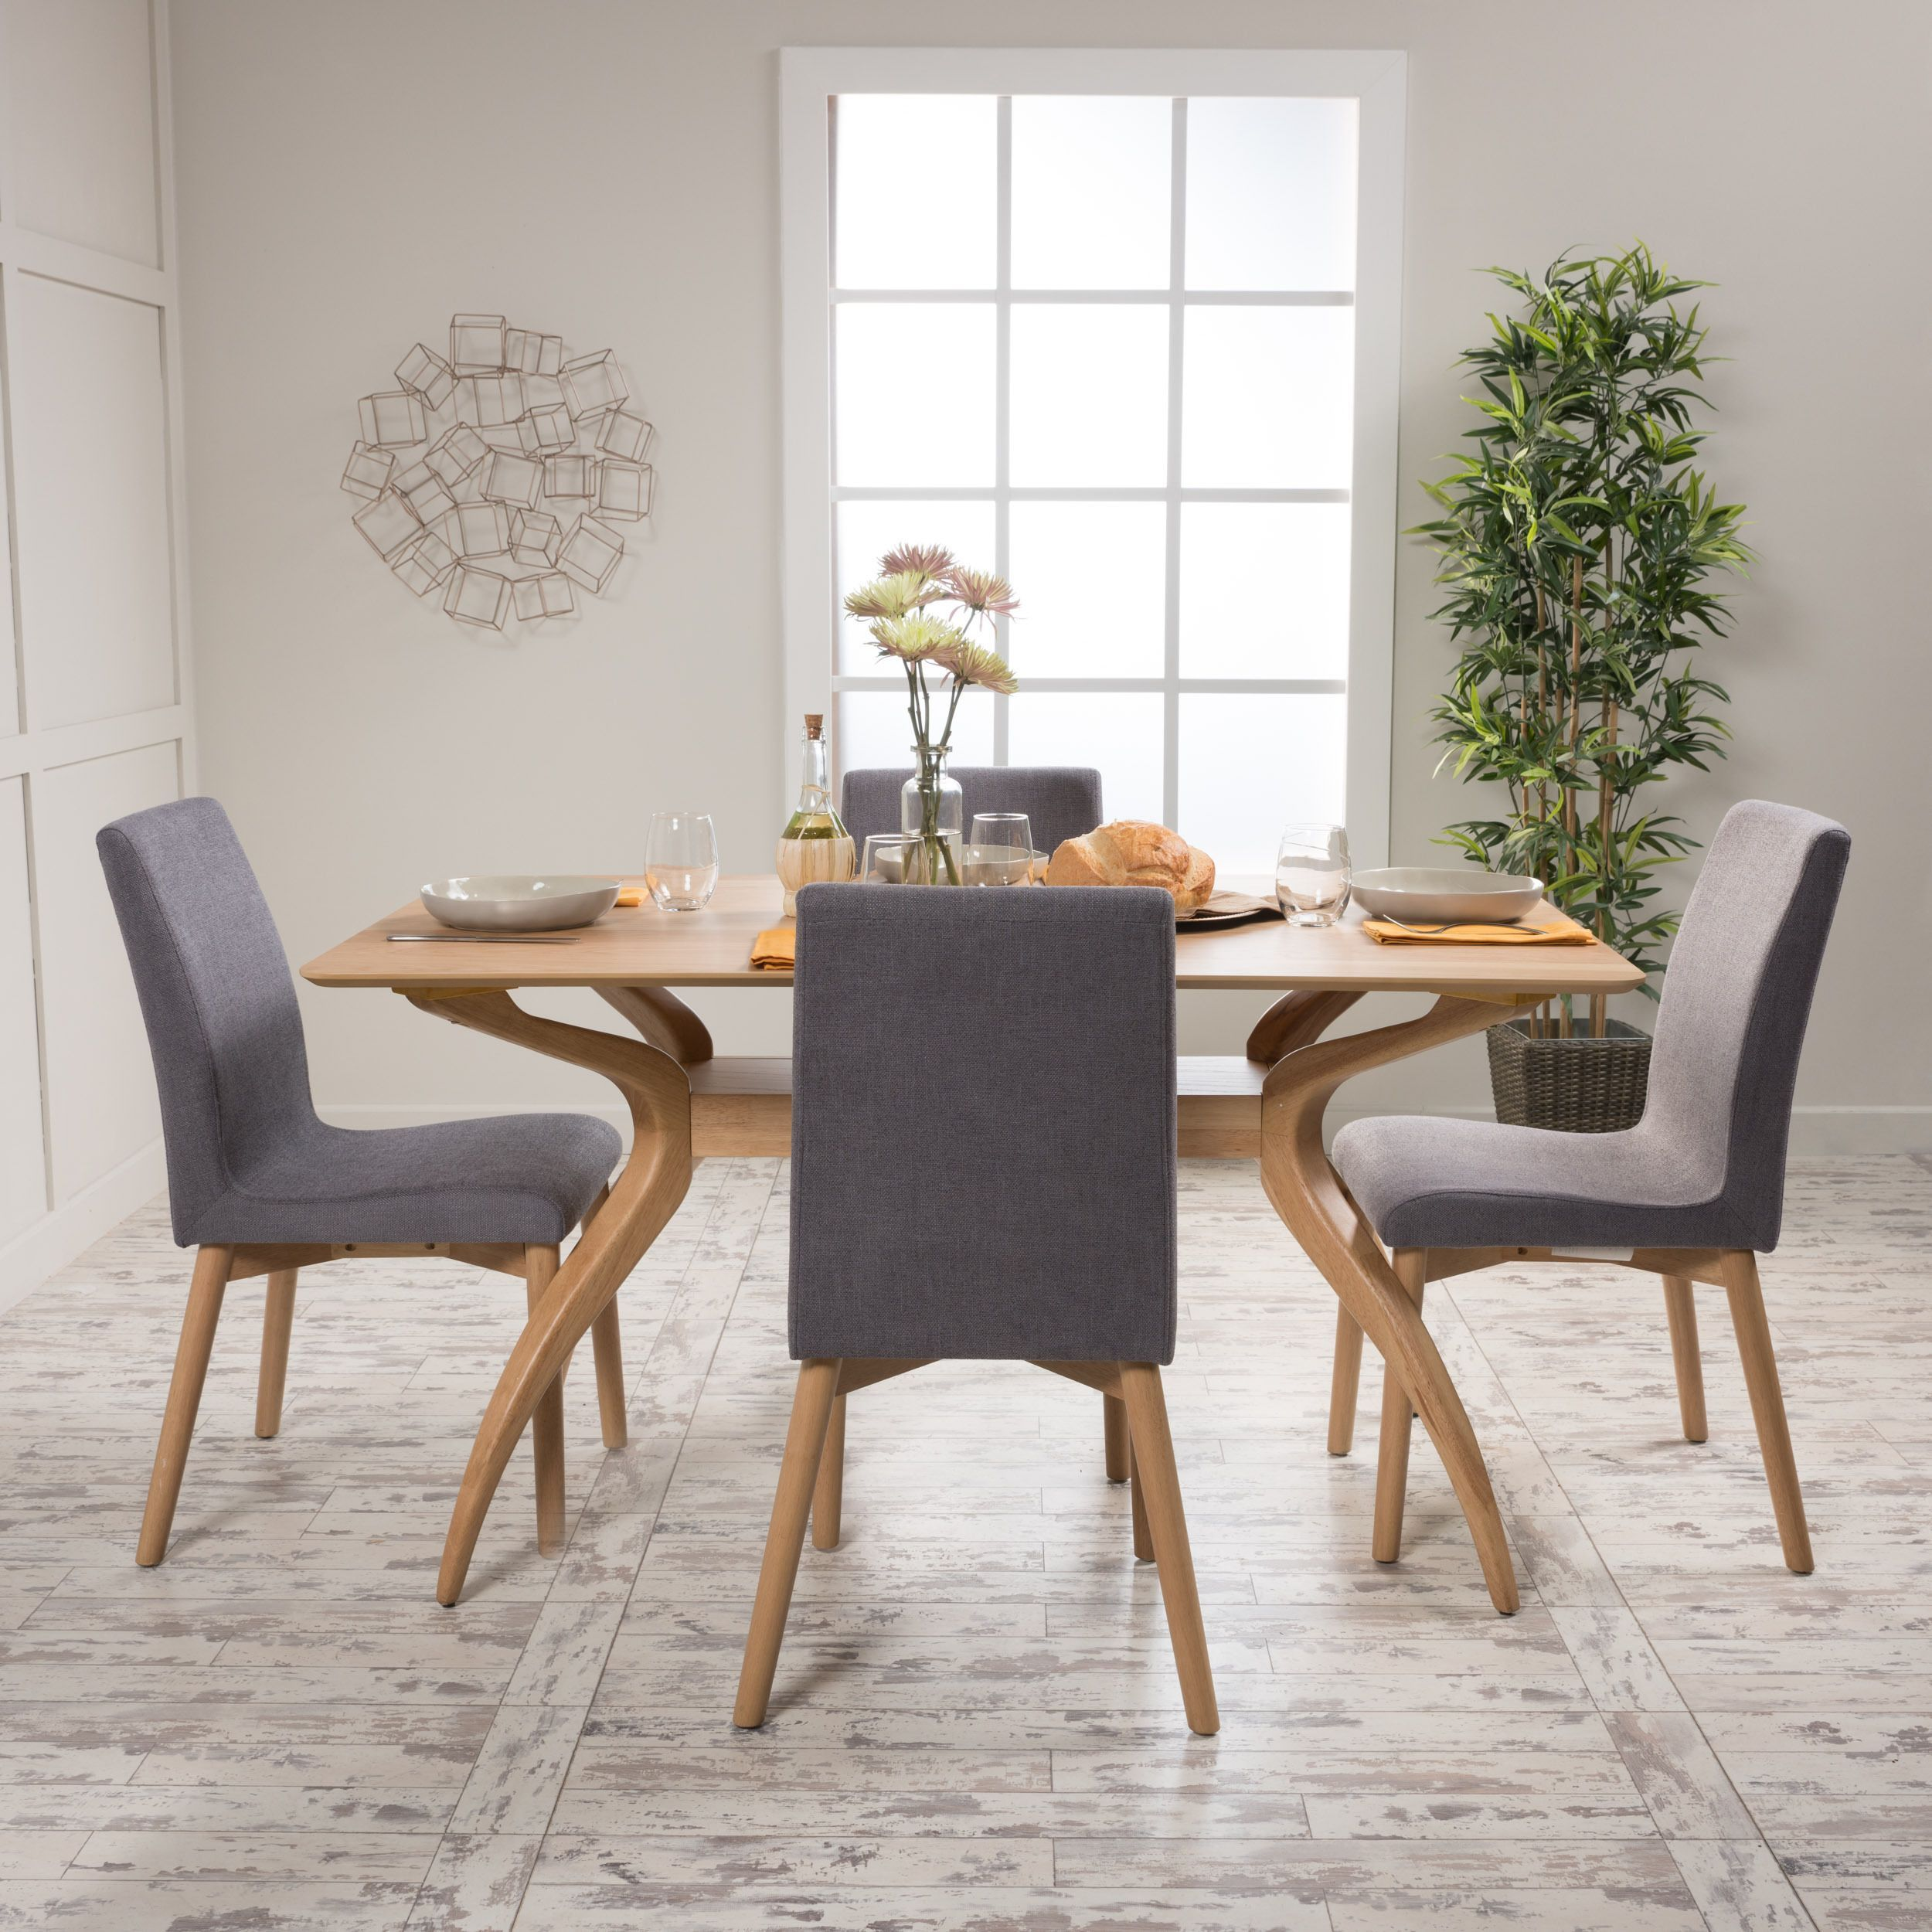 Christopher Knight Home Orrin Midcentury 5Piece Rectangle Dining Glamorous Dining Room Sets Online 2018